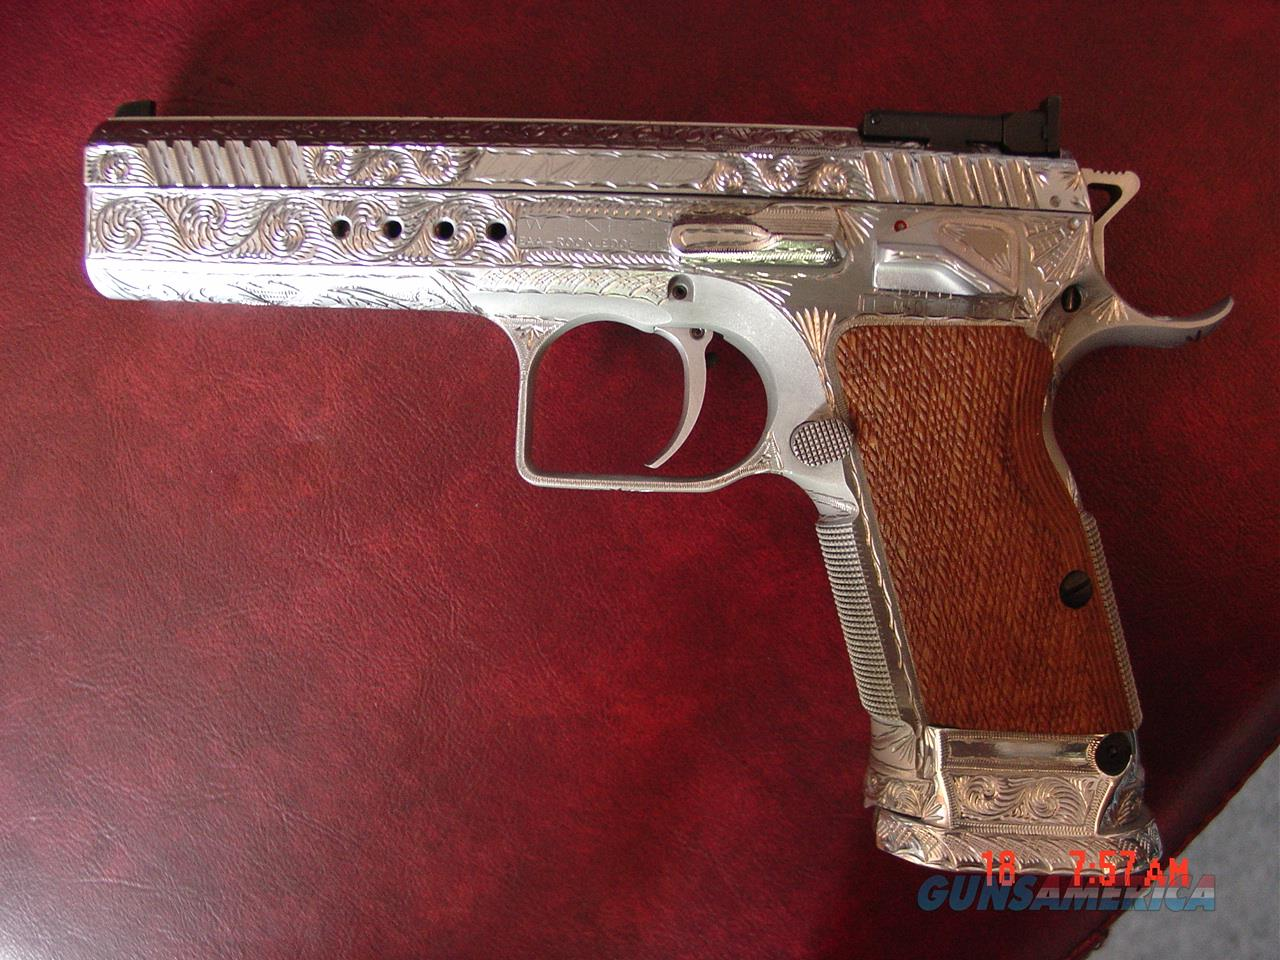 EAA Witness T97 Limited 45acp,fully deep hand engraved & polished by Flannery Engraving, made by Tanfoglio in Italy, suede fitted case etc a 1 of a kind masterpiece- way nicer in person.  Guns > Pistols > EAA Pistols > Other